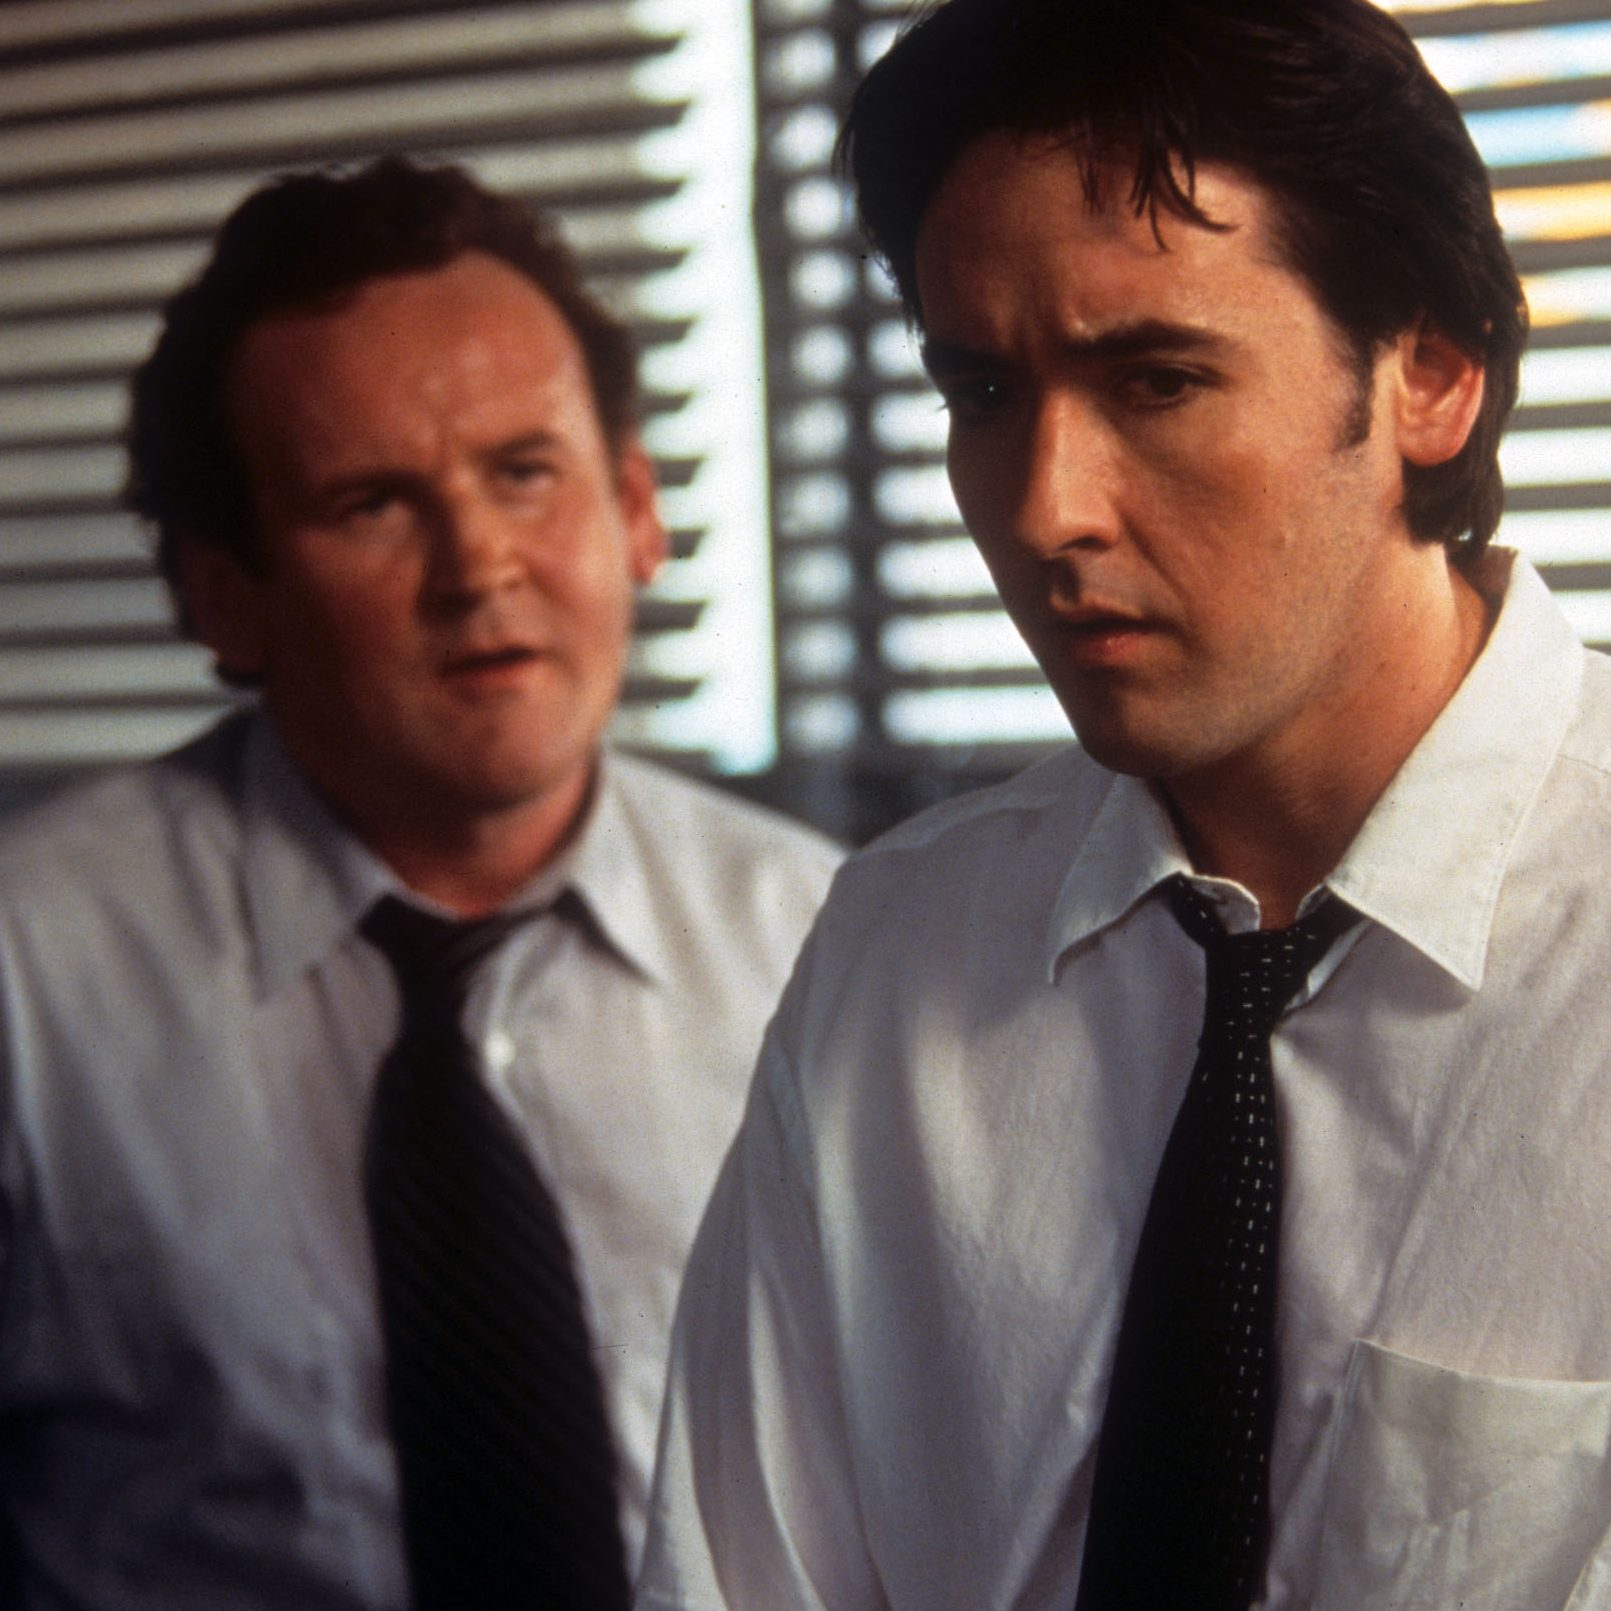 Con Air john cusack 40653385 2779 1868 e1579774287913 20 Things You Might Not Have Known About Say Anything...